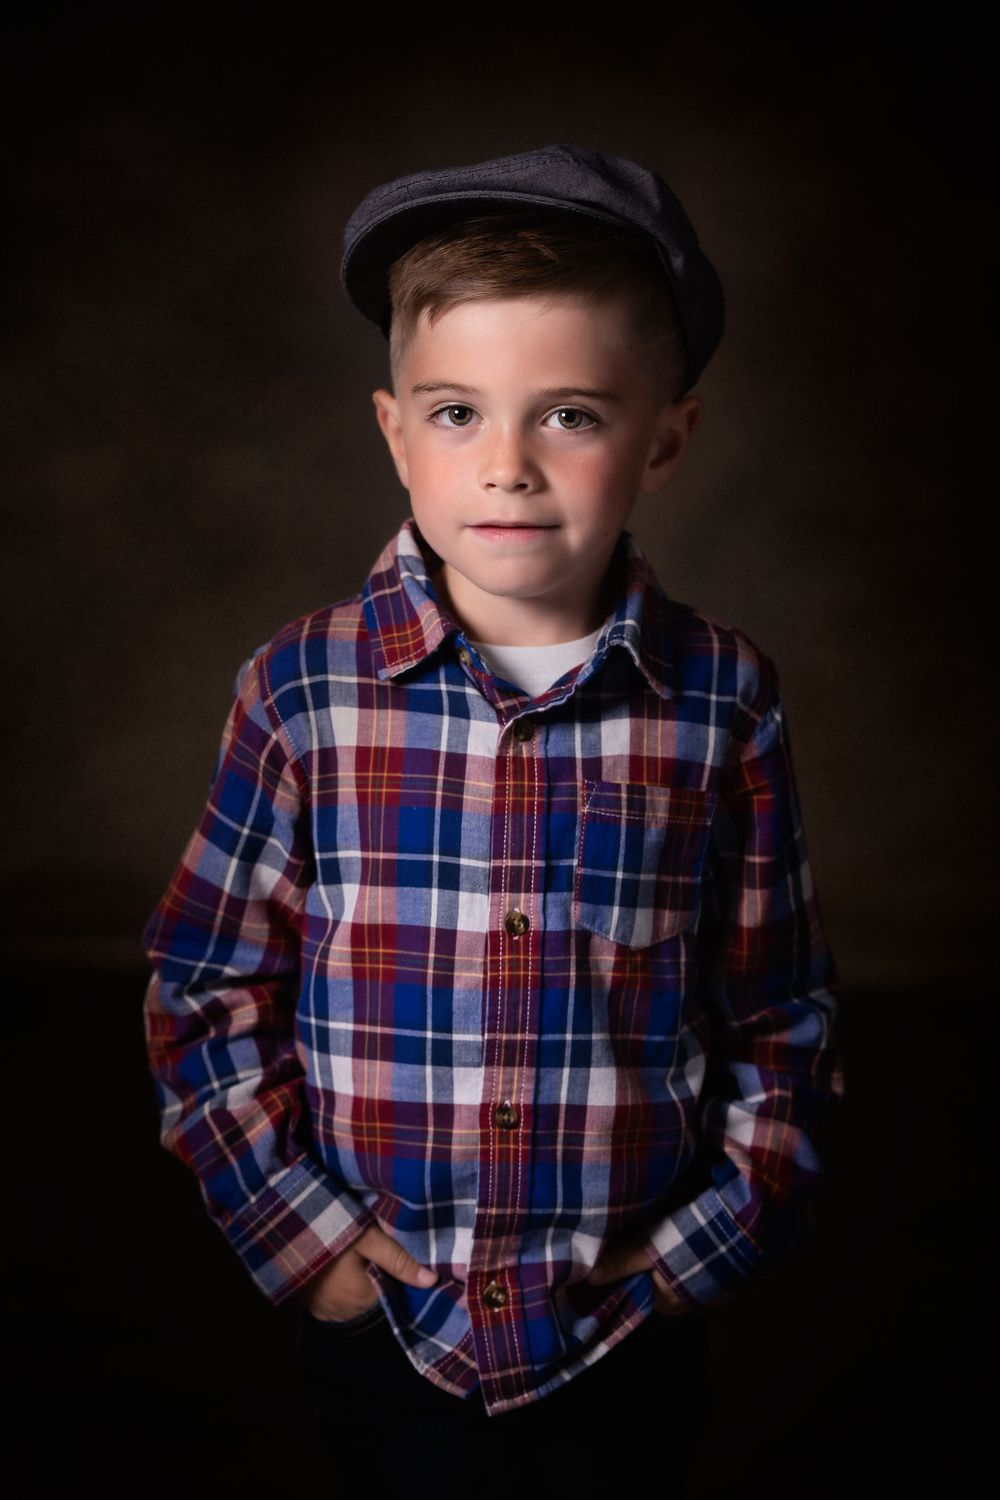 Fine art portrait of young boy wearing a flannel shirt and newsboy cap.